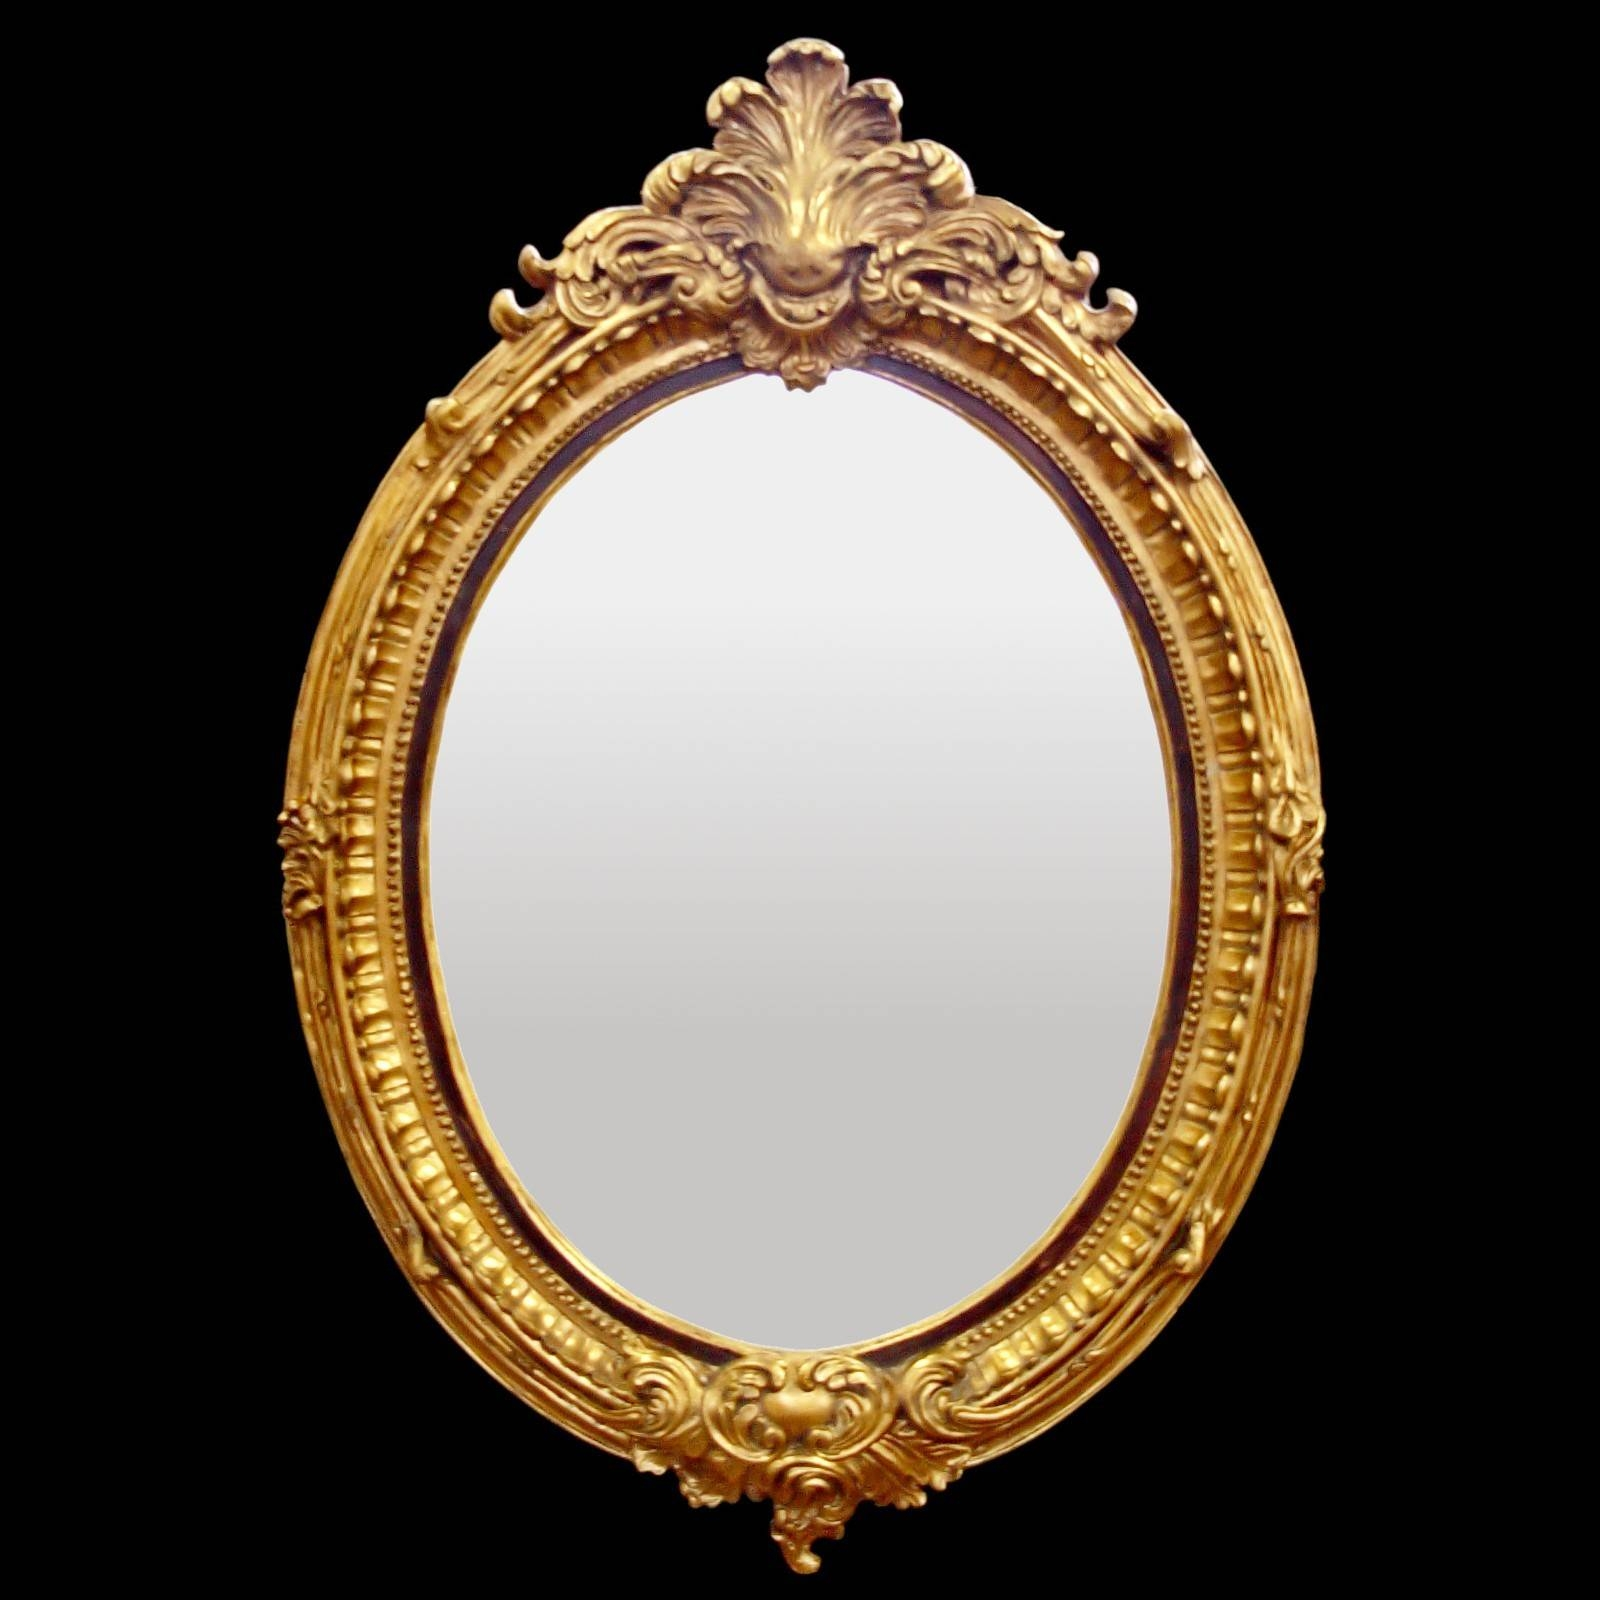 Baroque Hall Mirror Oval Wall Mirror Gold Color Red Leaf Motif within Baroque Wall Mirrors (Image 1 of 15)